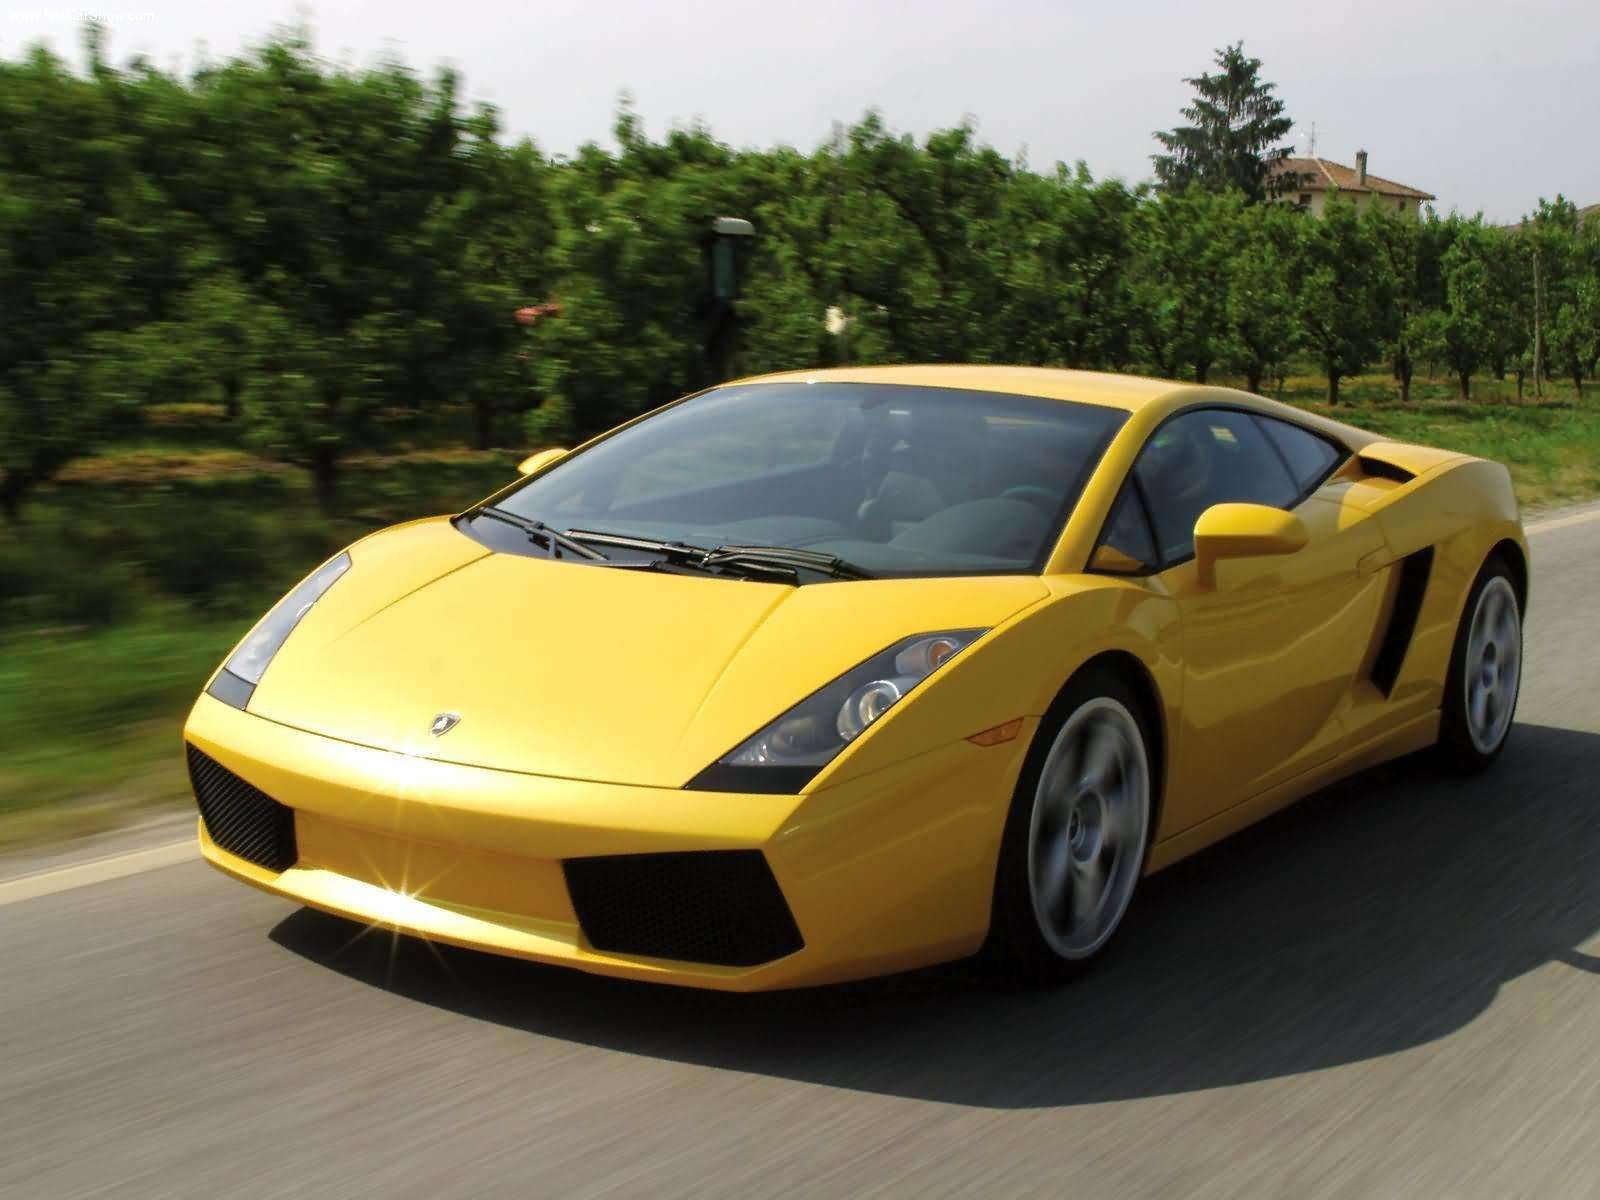 2003 Lamborghini Gallardo Wallpapers